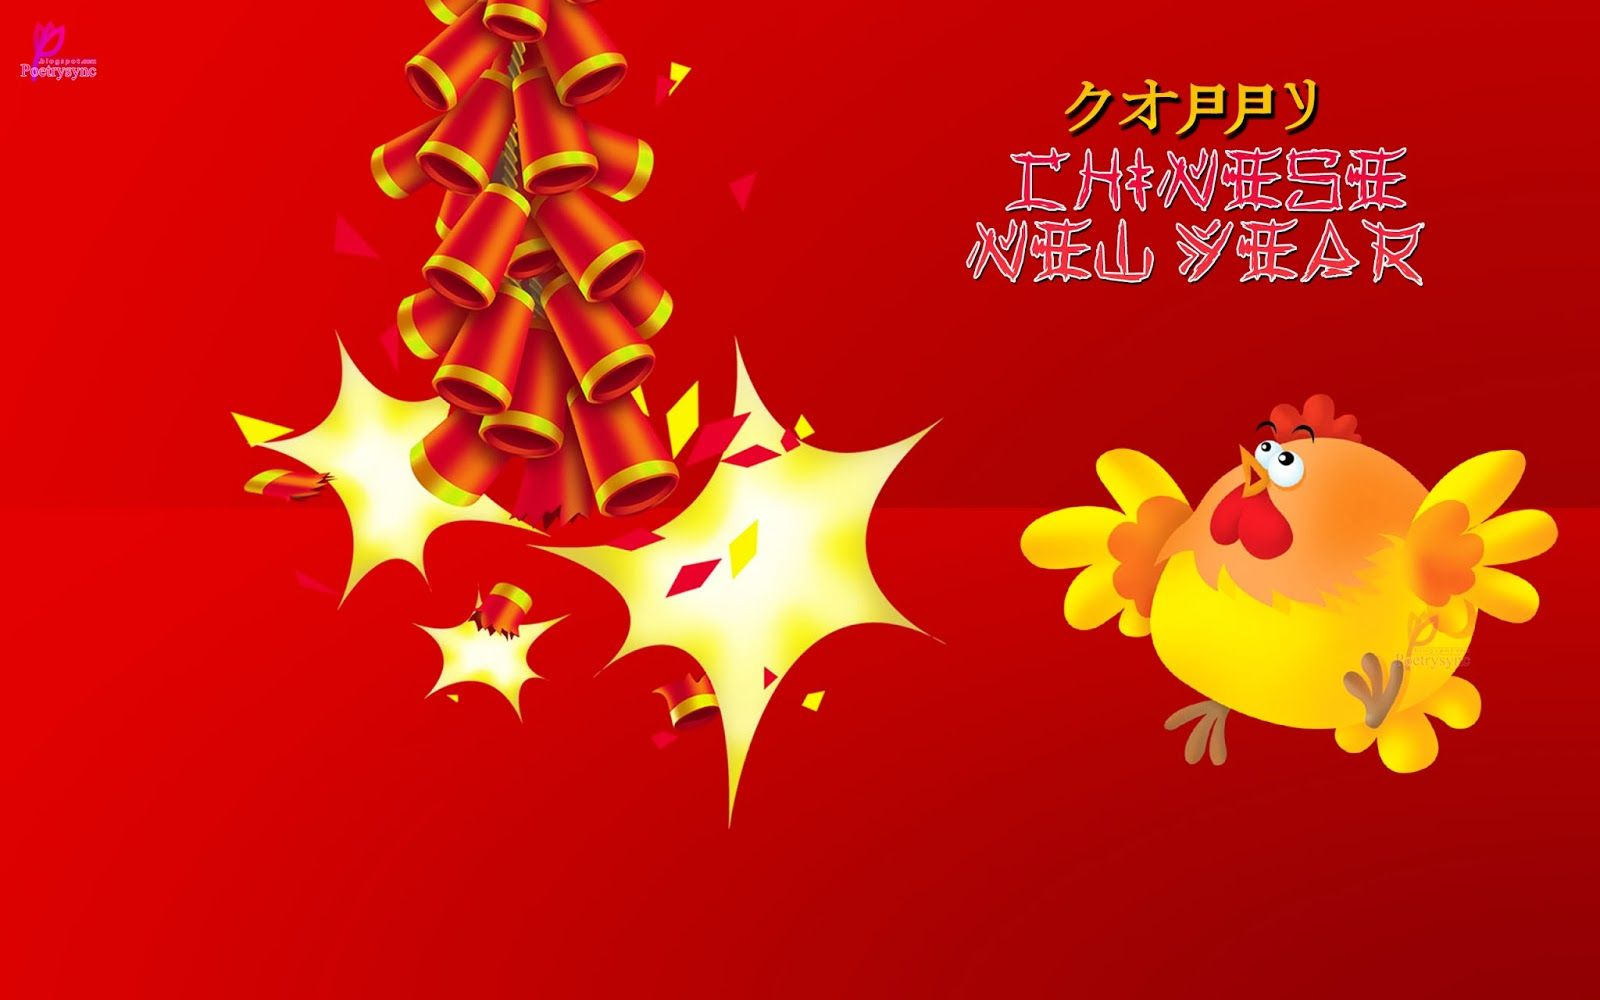 Chinese new year wishes image wallpaper year of the red fire cock chinese new year wishes image wallpaper happy lunar new year card tet new year image happy vietnamese new year kristyandbryce Image collections